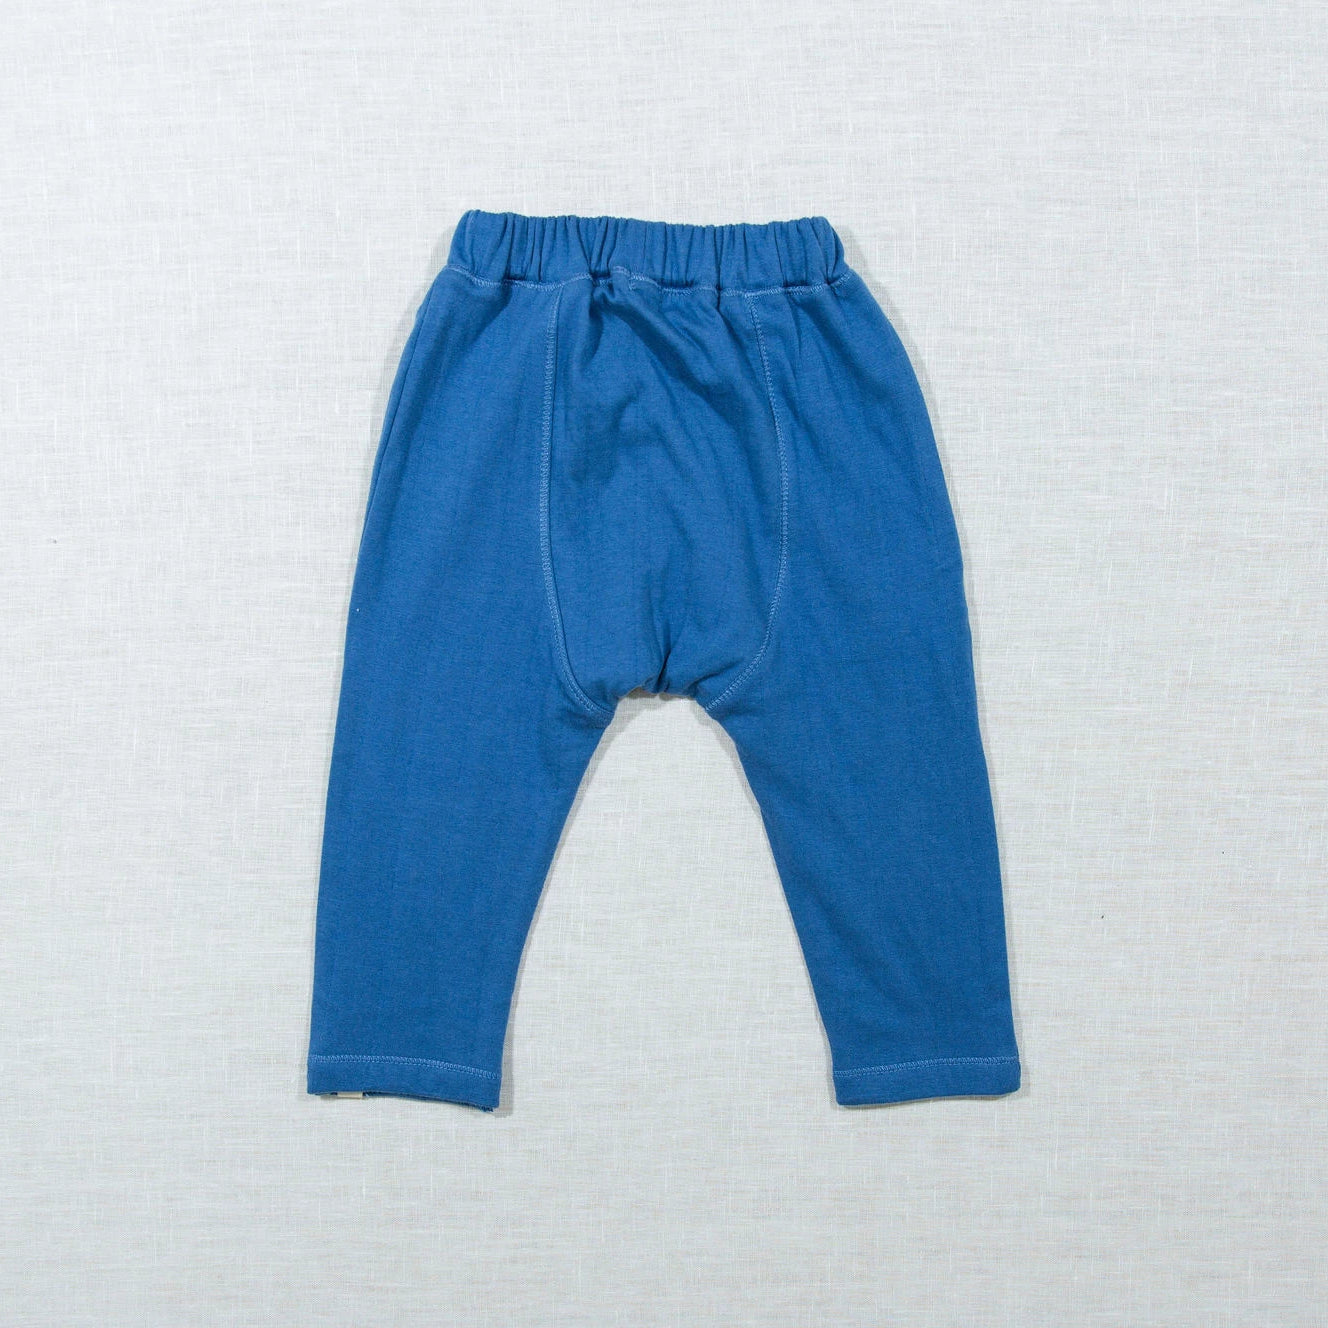 Blue Patchwork Pants